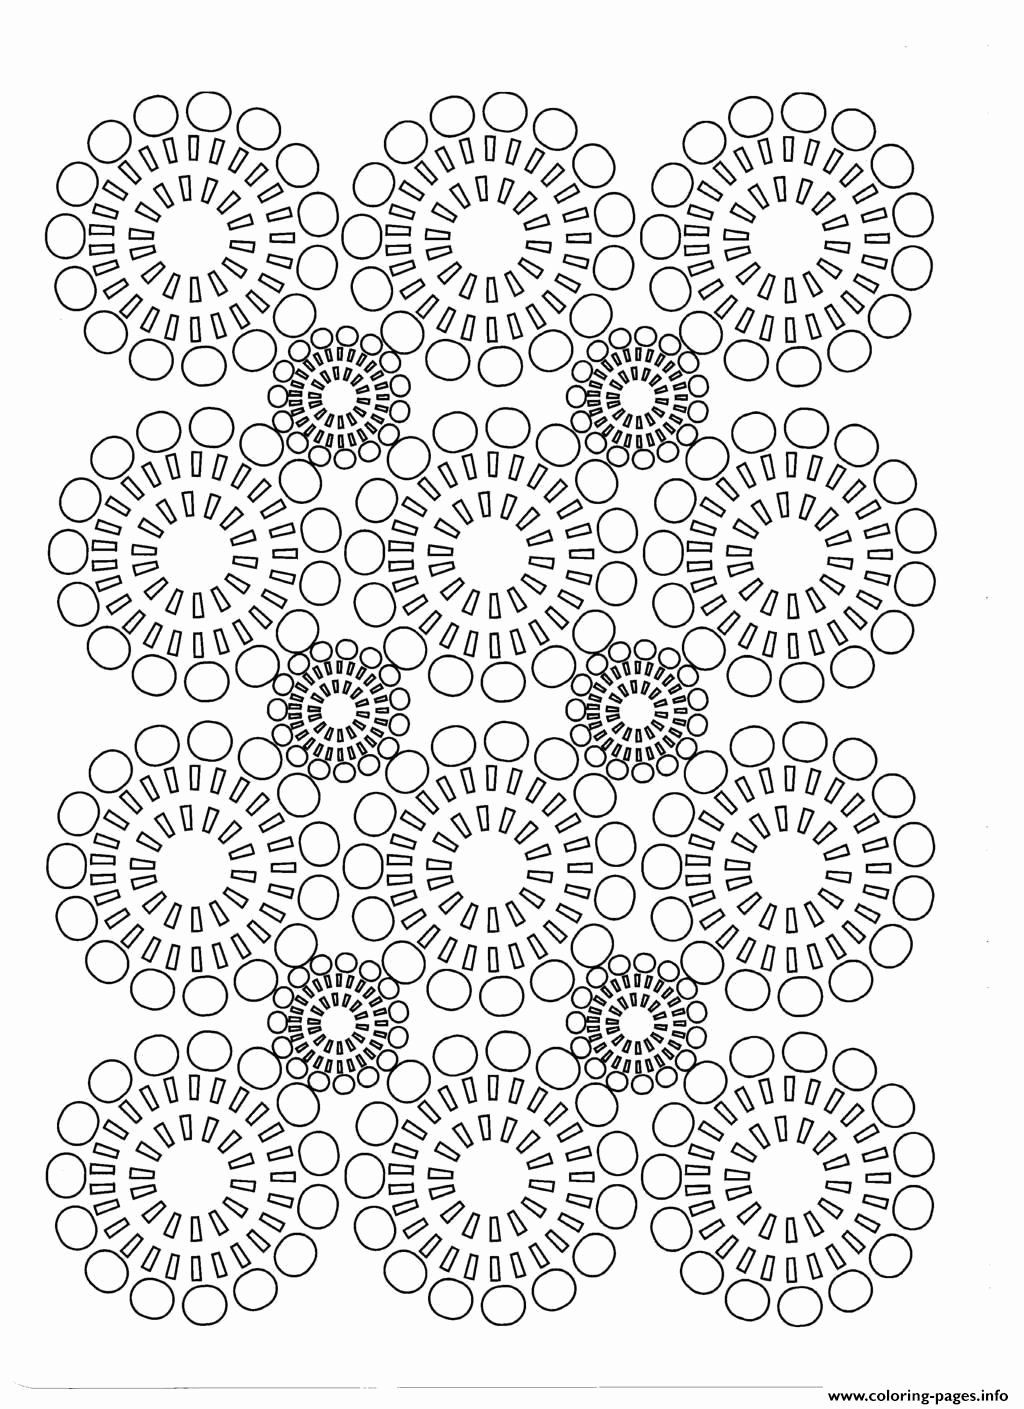 Washington State Flower Coloring Page Unique Printable Coloring